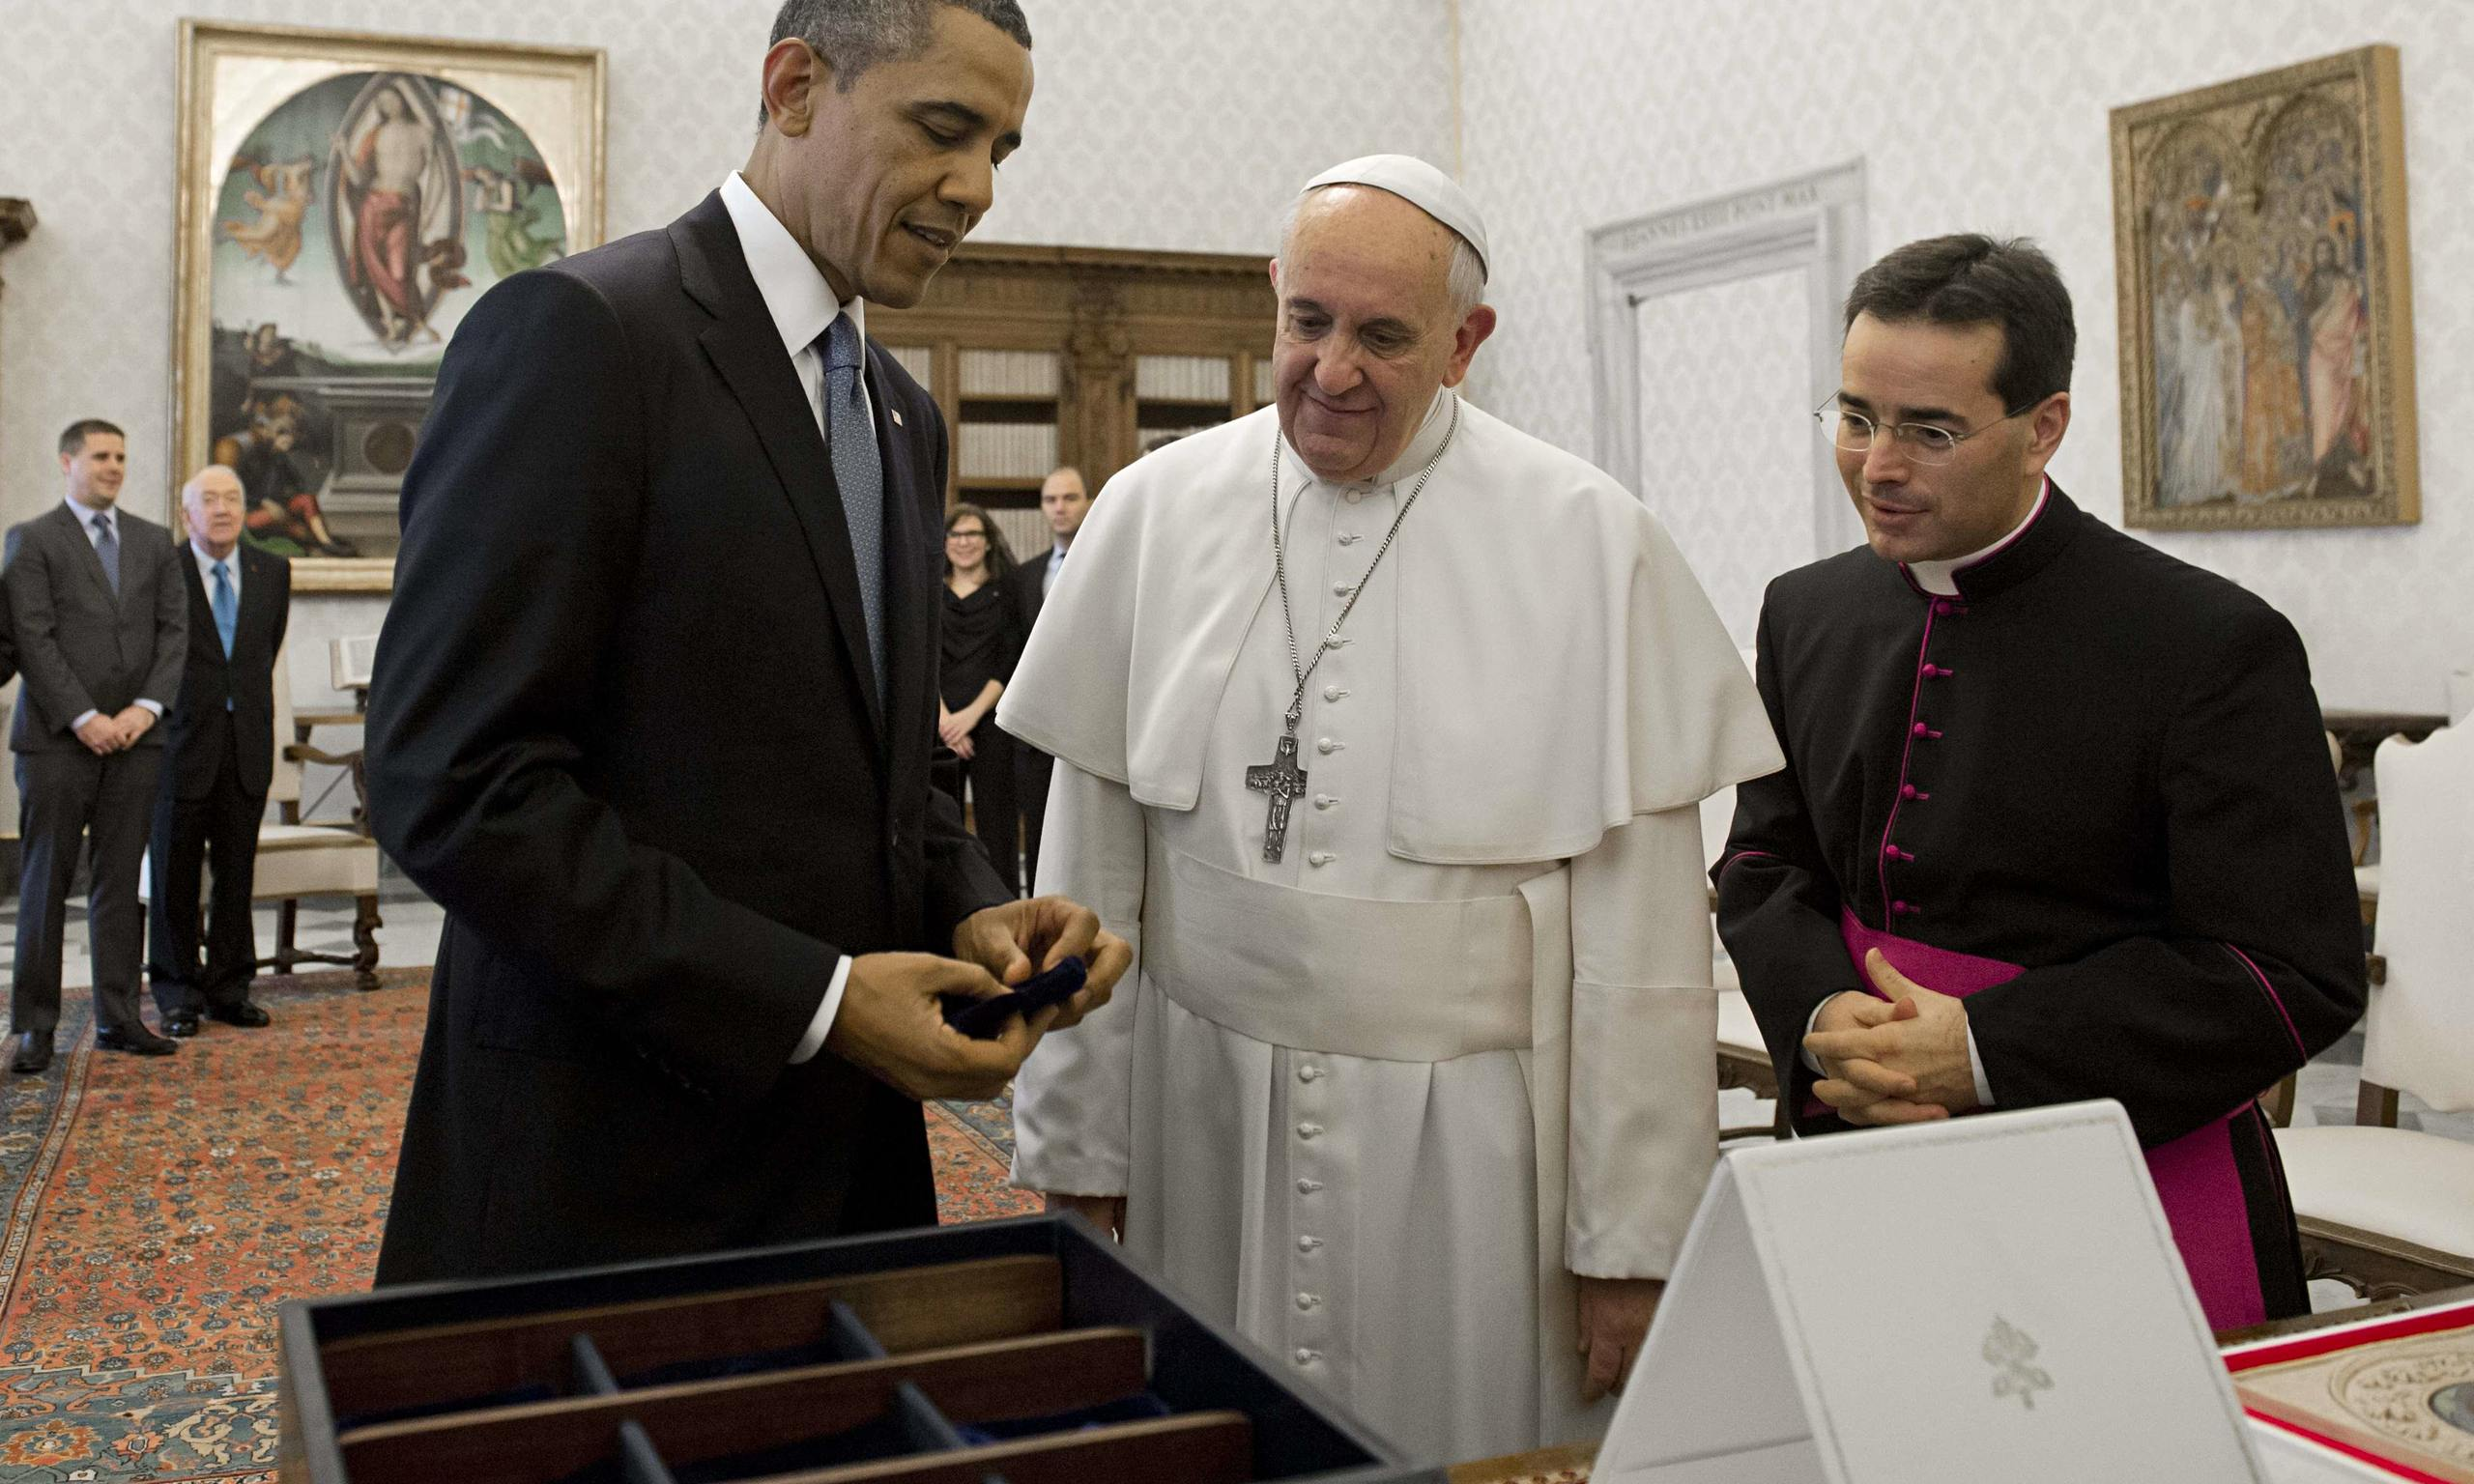 seeds on common ground with Pope Francis